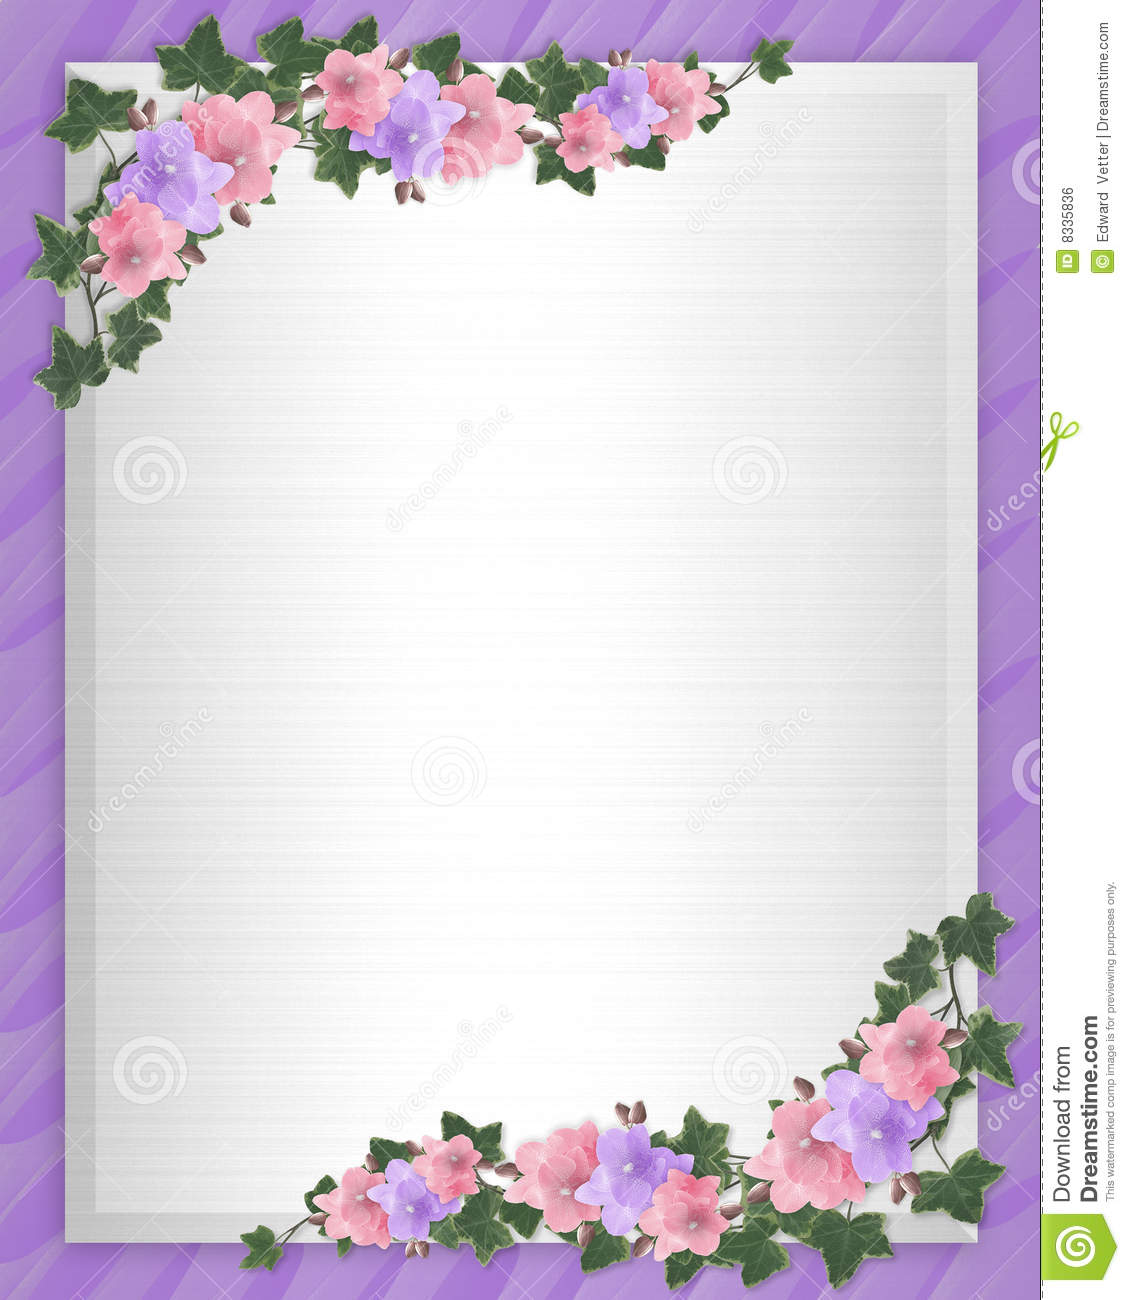 Wedding Invite Borders: Wedding Invitation Border Orchids Ivy Stock Illustration